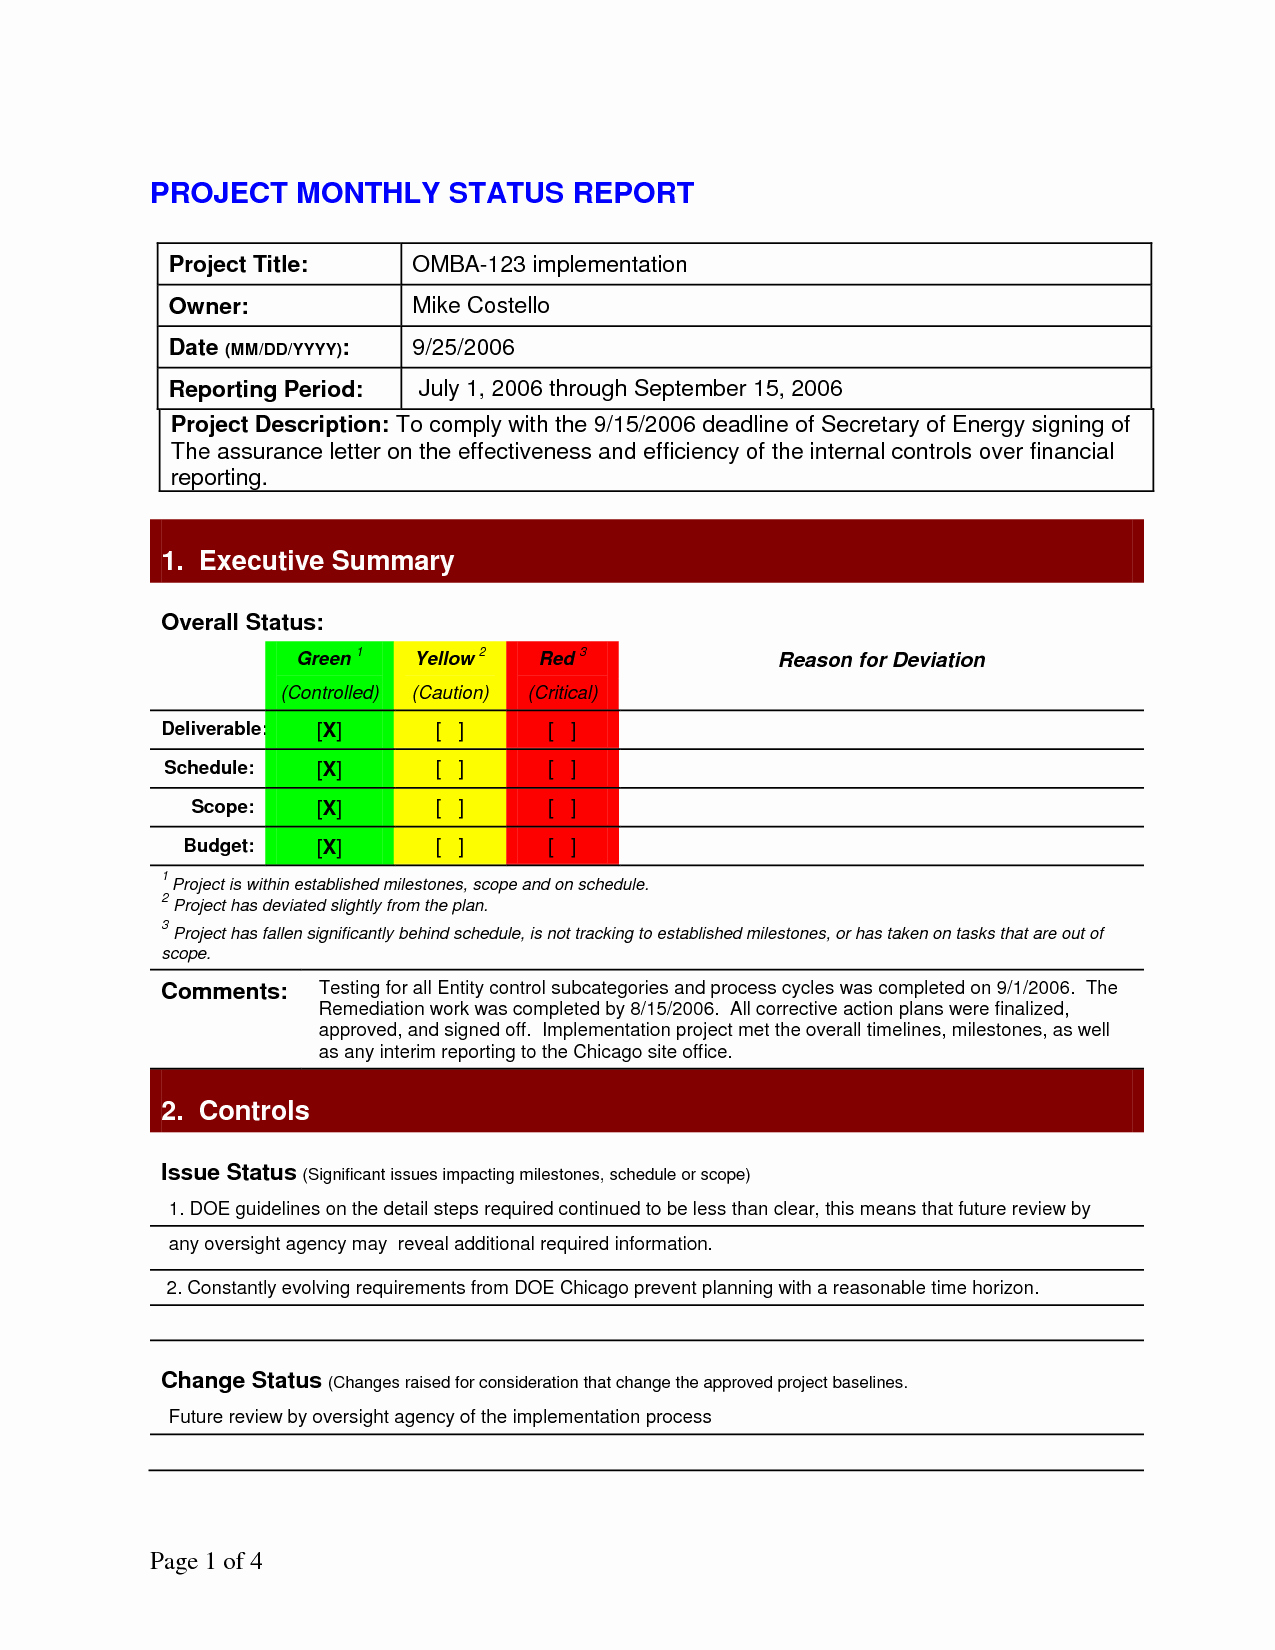 Project Management Report Template Beautiful Project Status Report Template 2dfahbab 1275×1650